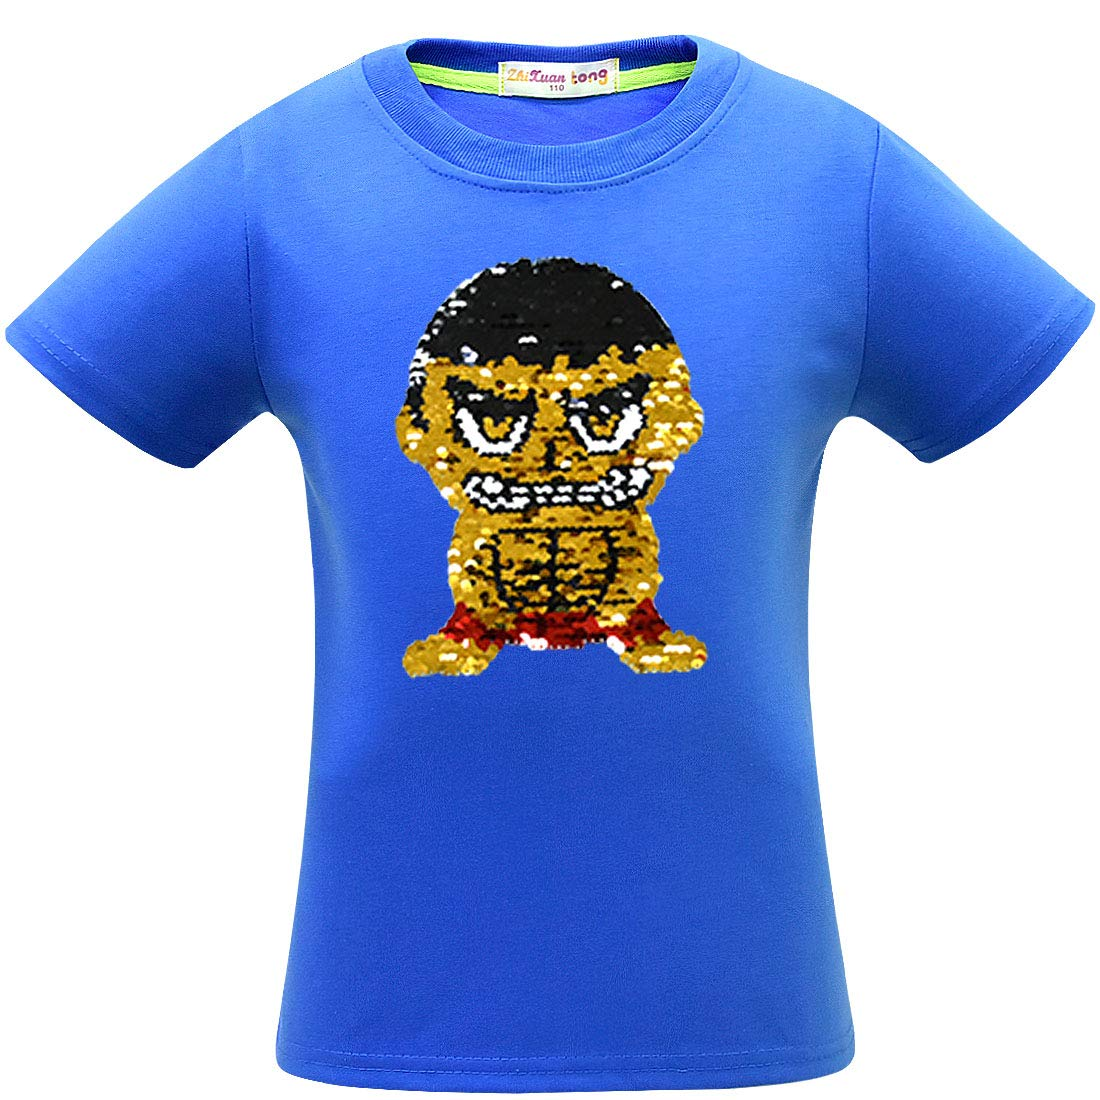 Always beautiful 2019 Summer Boys Cotton Double-Sided Flash Sequin T-Shirt New Kids Short Sleeve